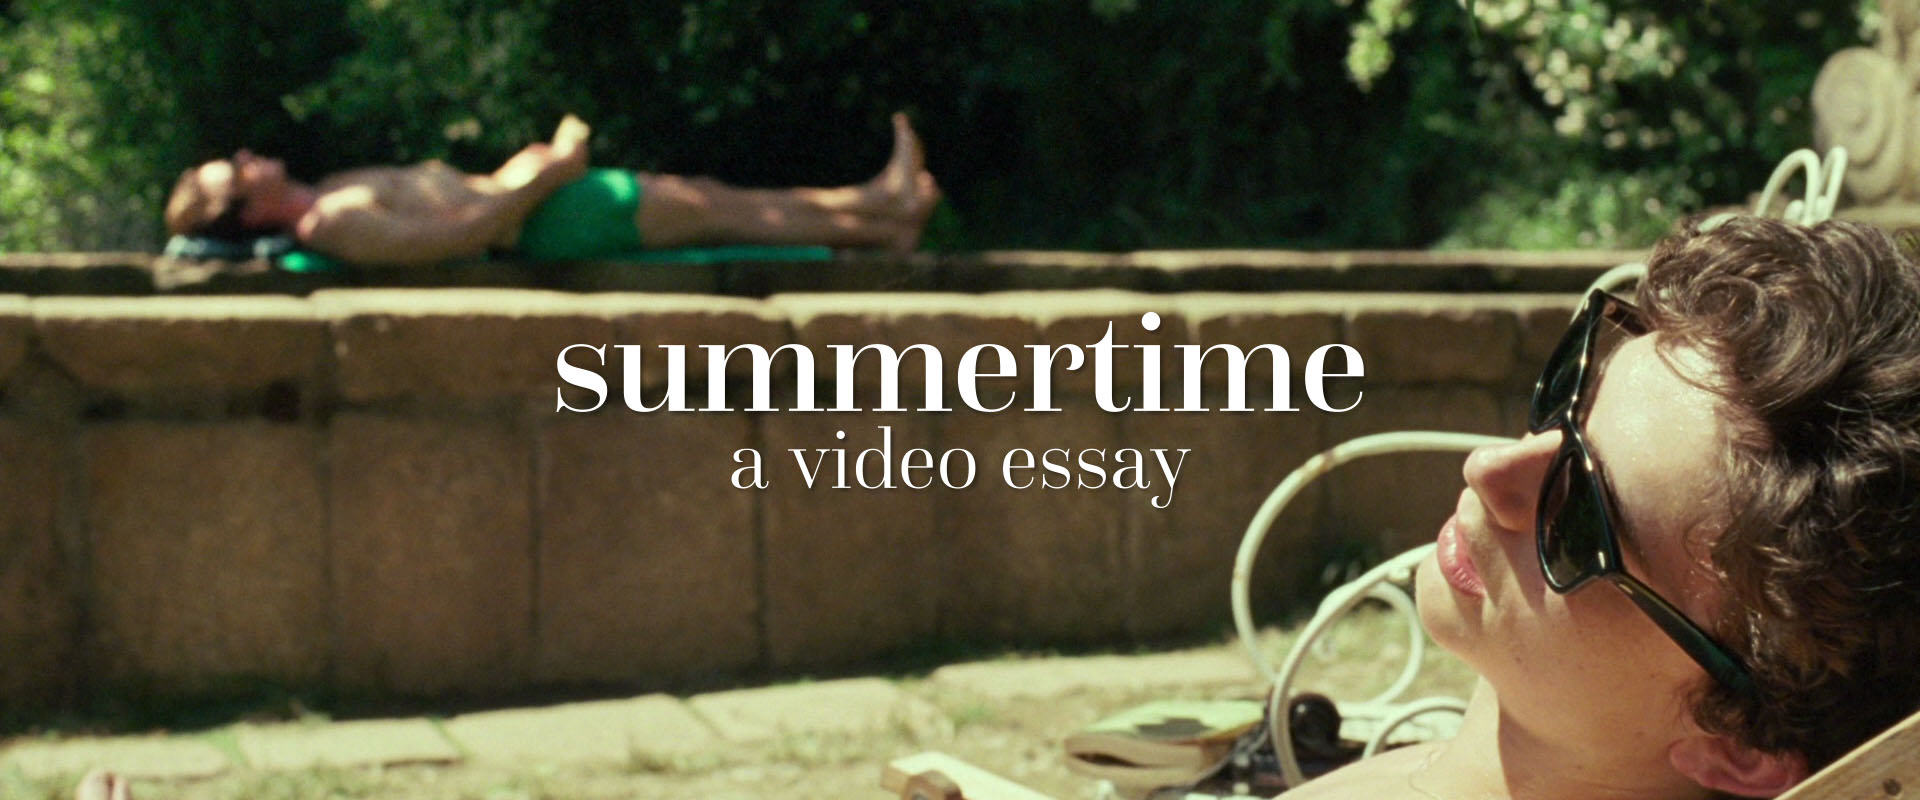 summertime video essay call me by your name the florida project